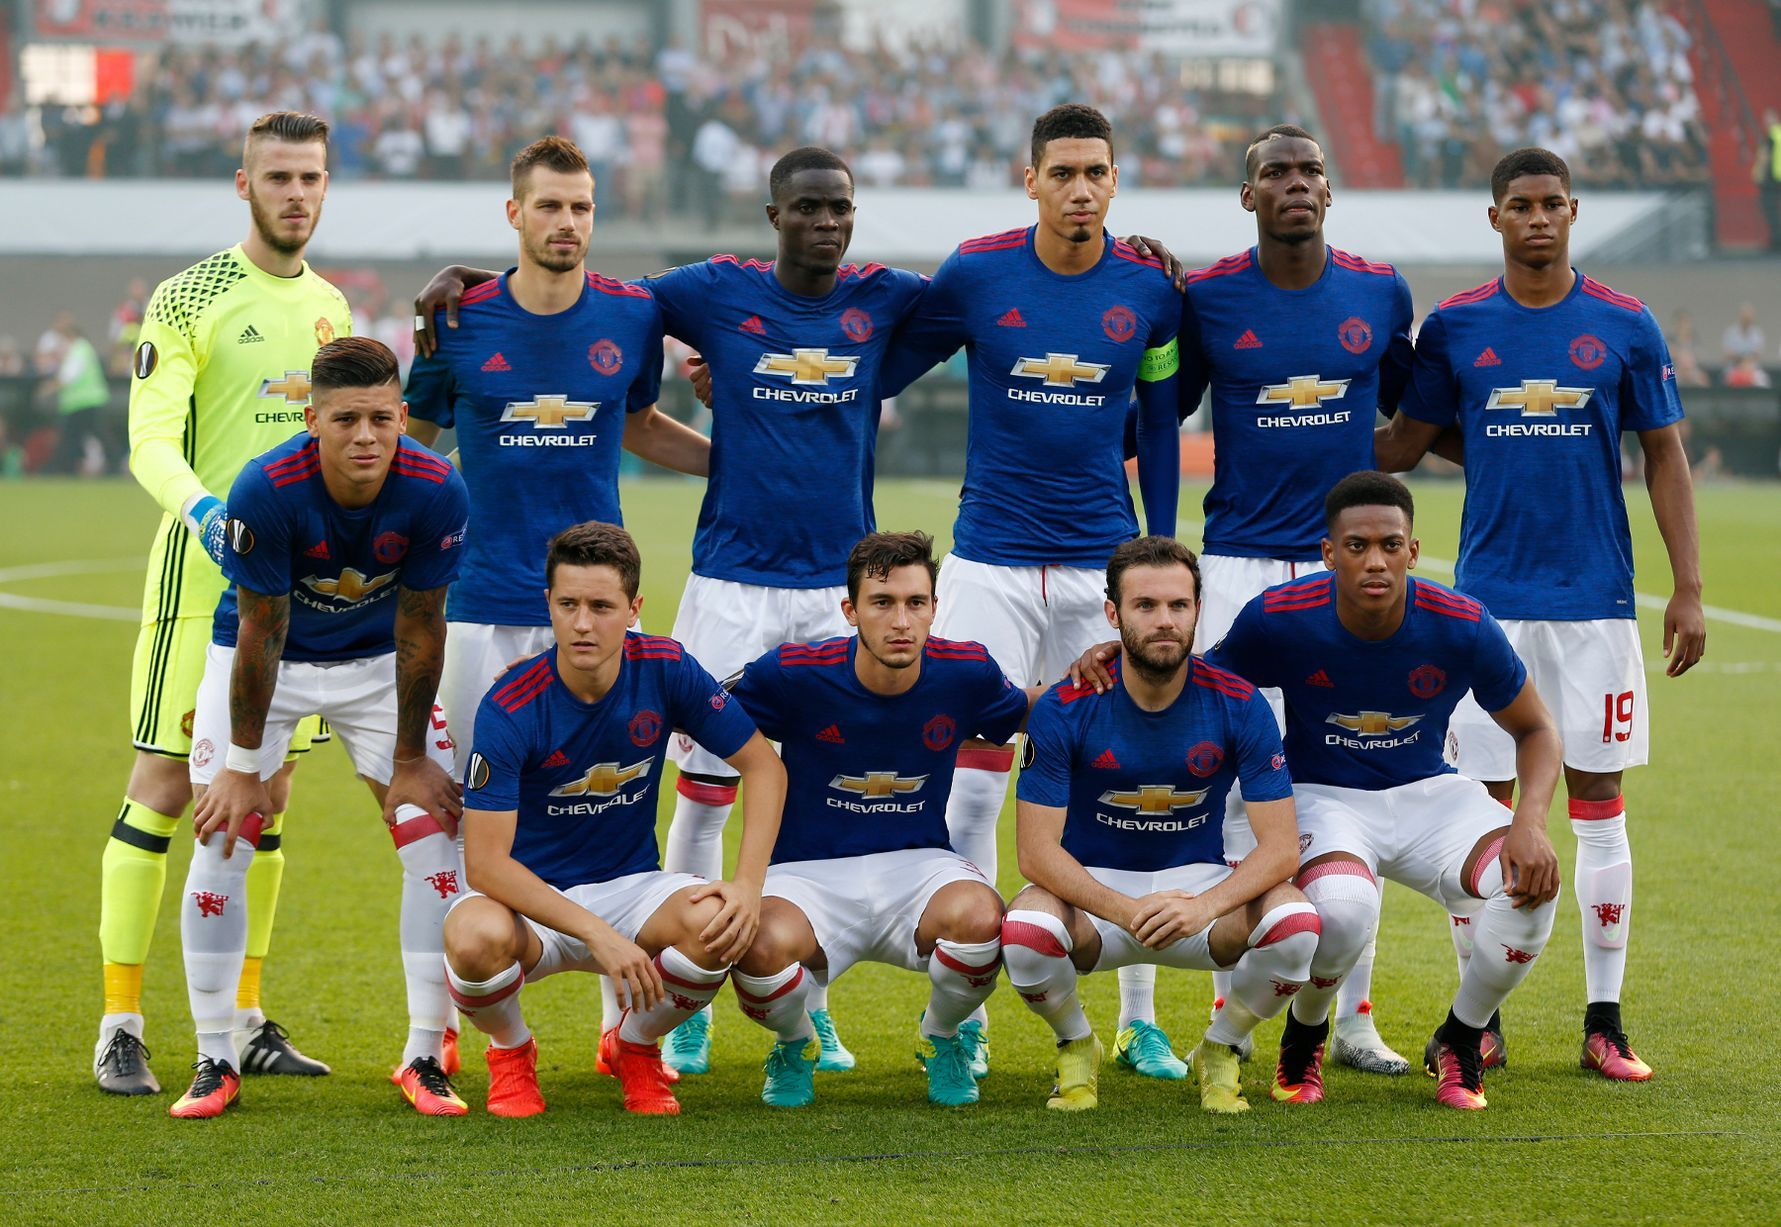 Manchester United team group before the match